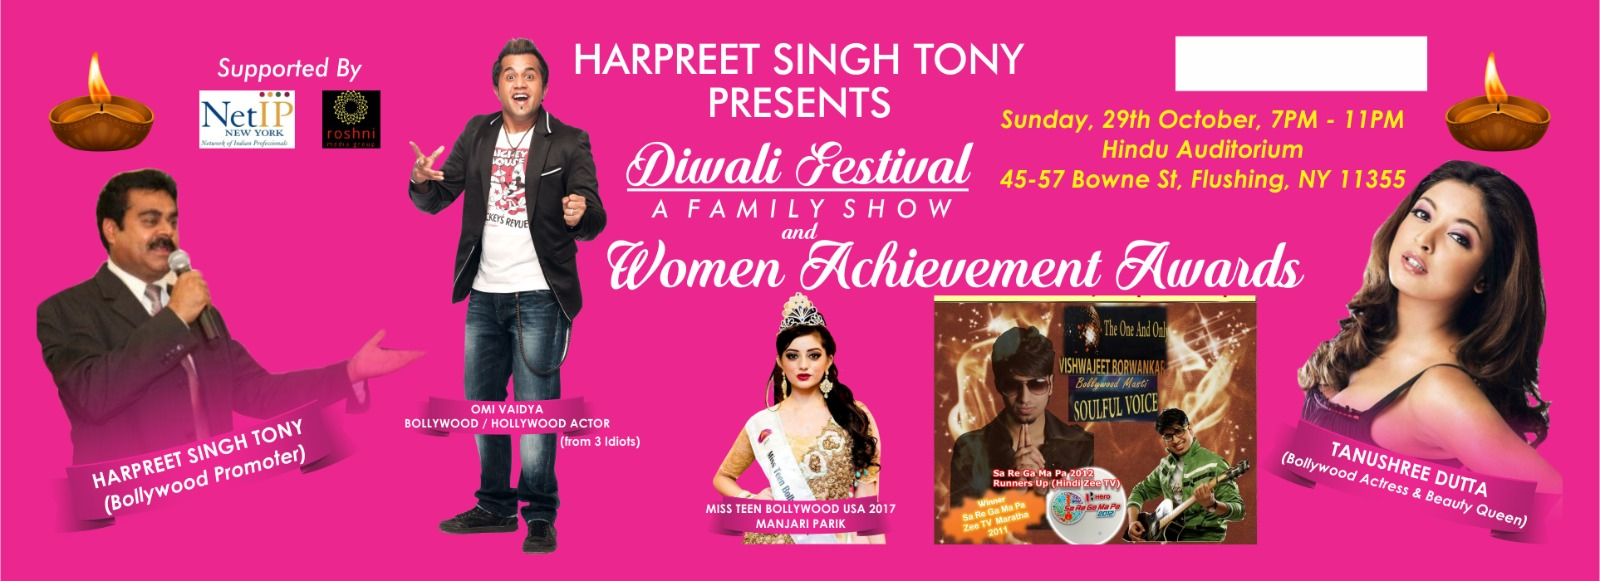 Diwali Festival - A Family Show and Women Achievement Awards